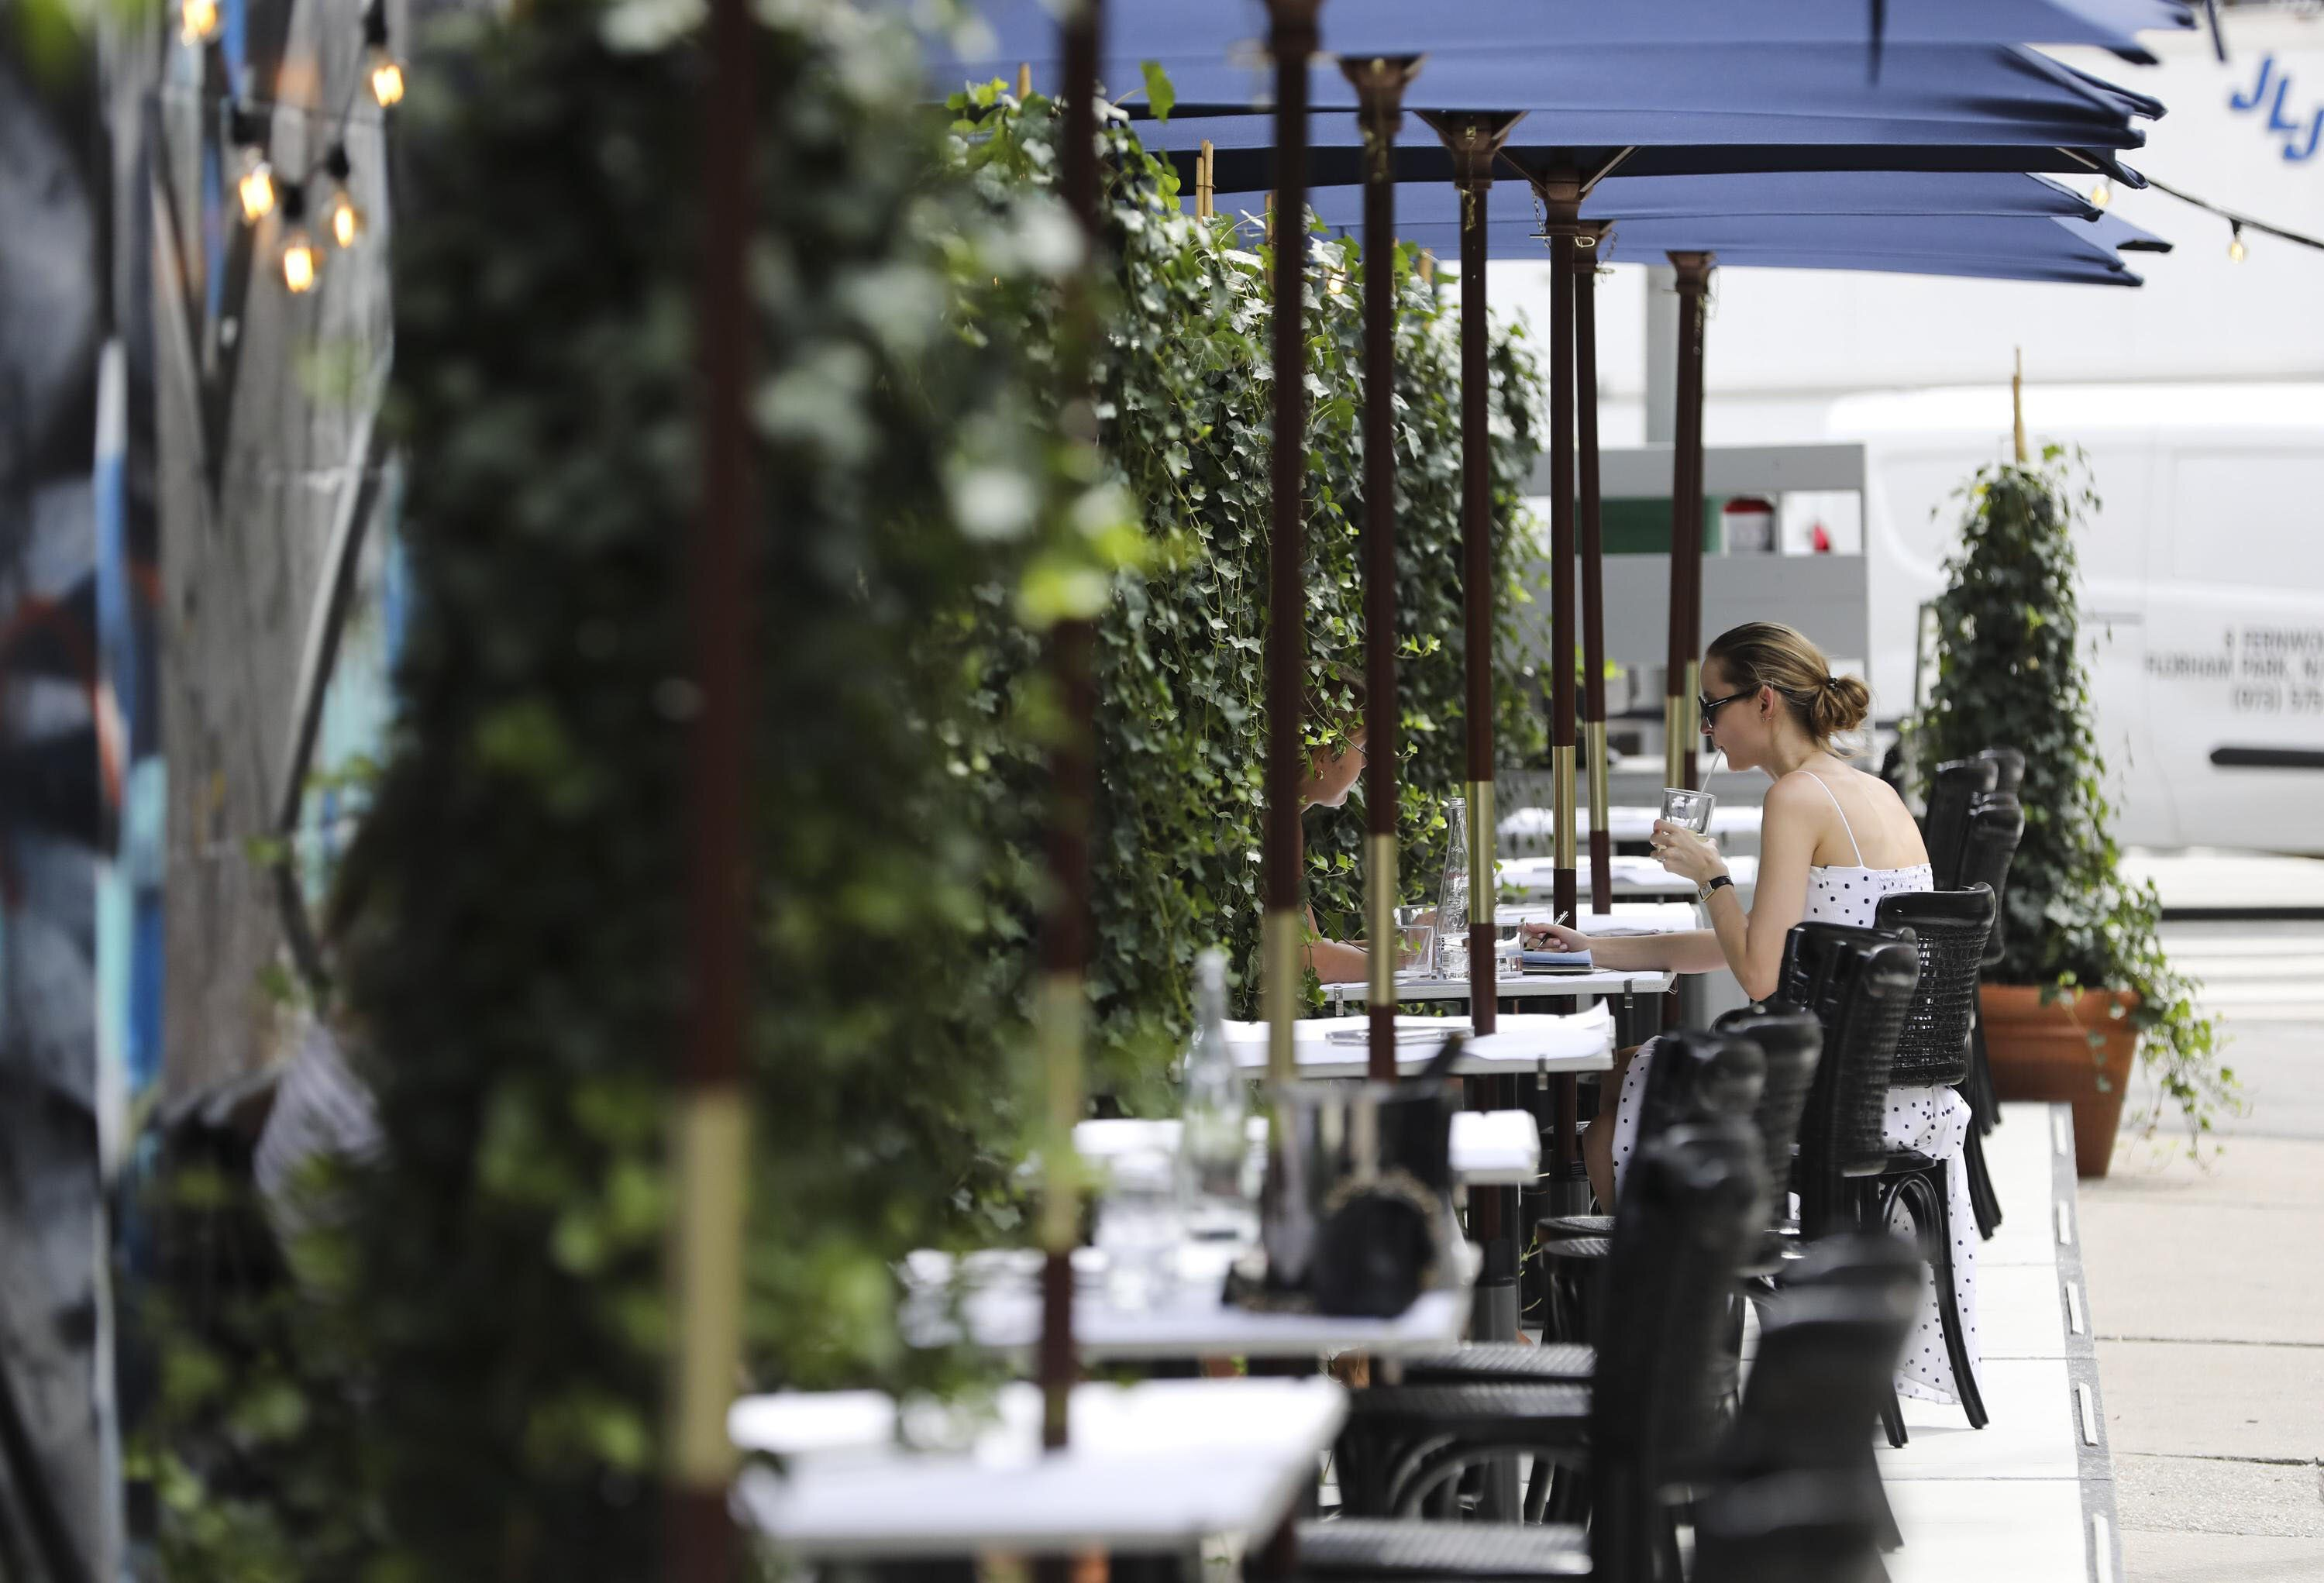 An outdoor dining area in New York City on July 30.Adults who tested positive for the coronavirus were roughly twice as